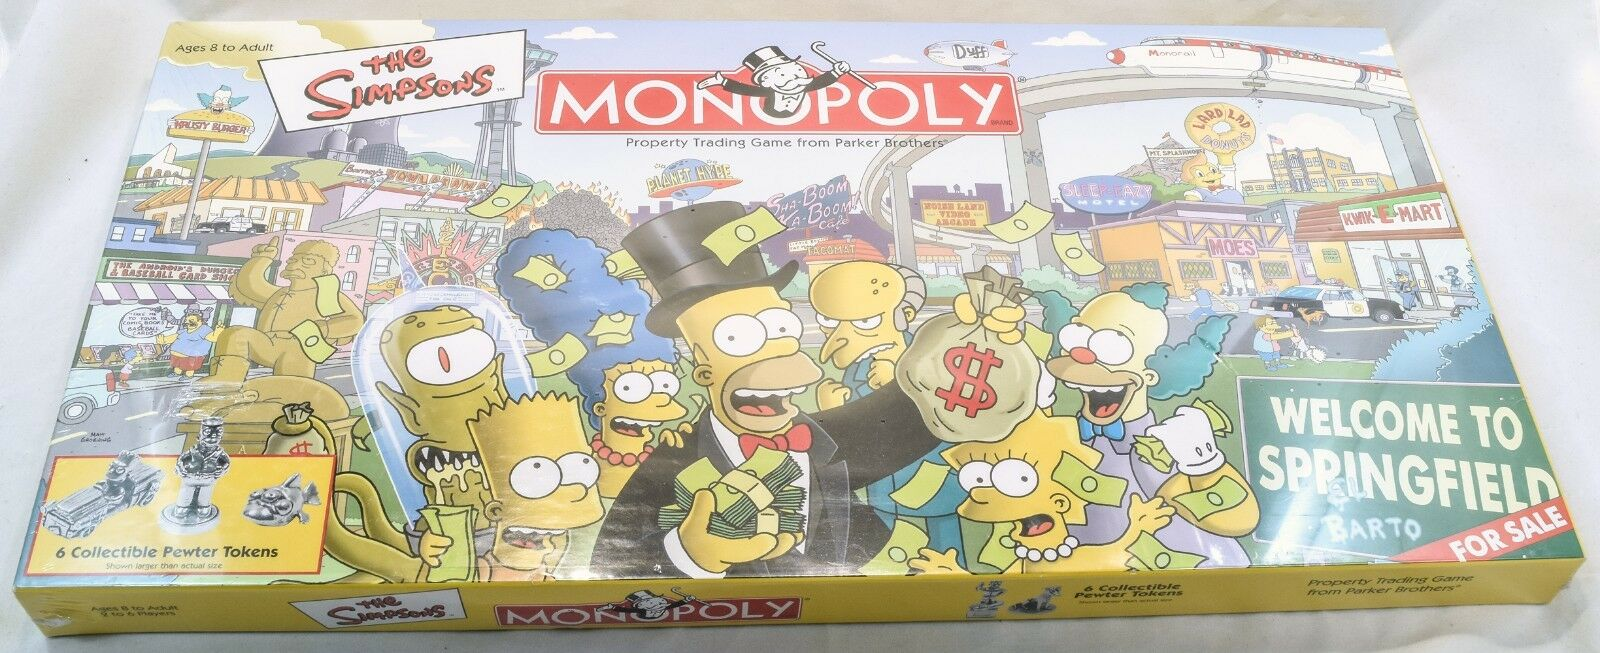 The Simpsons Monopoly Board Game Welcome To Springfield New Sealed Box Has Wear